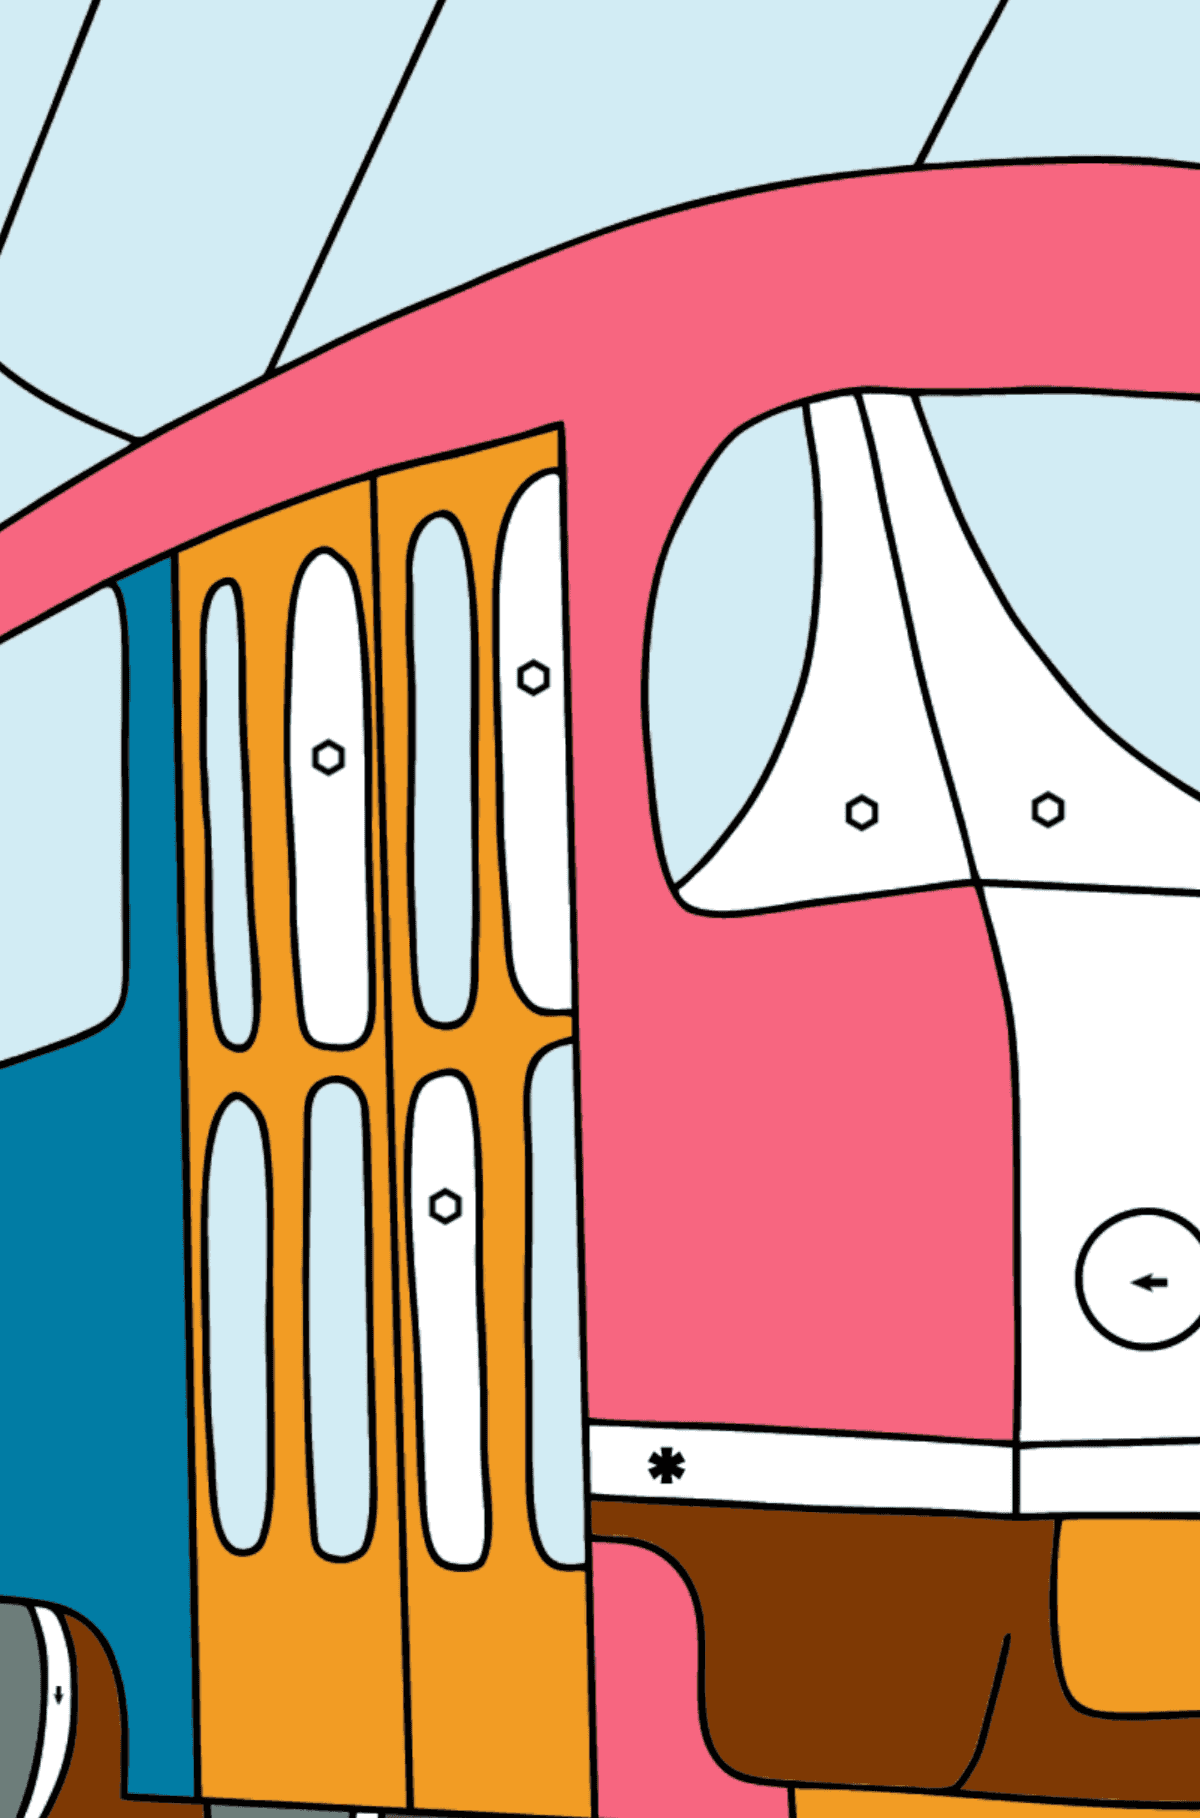 A Tram Coloring Page - Print fo free - Coloring by Symbols and Geometric Shapes for Kids